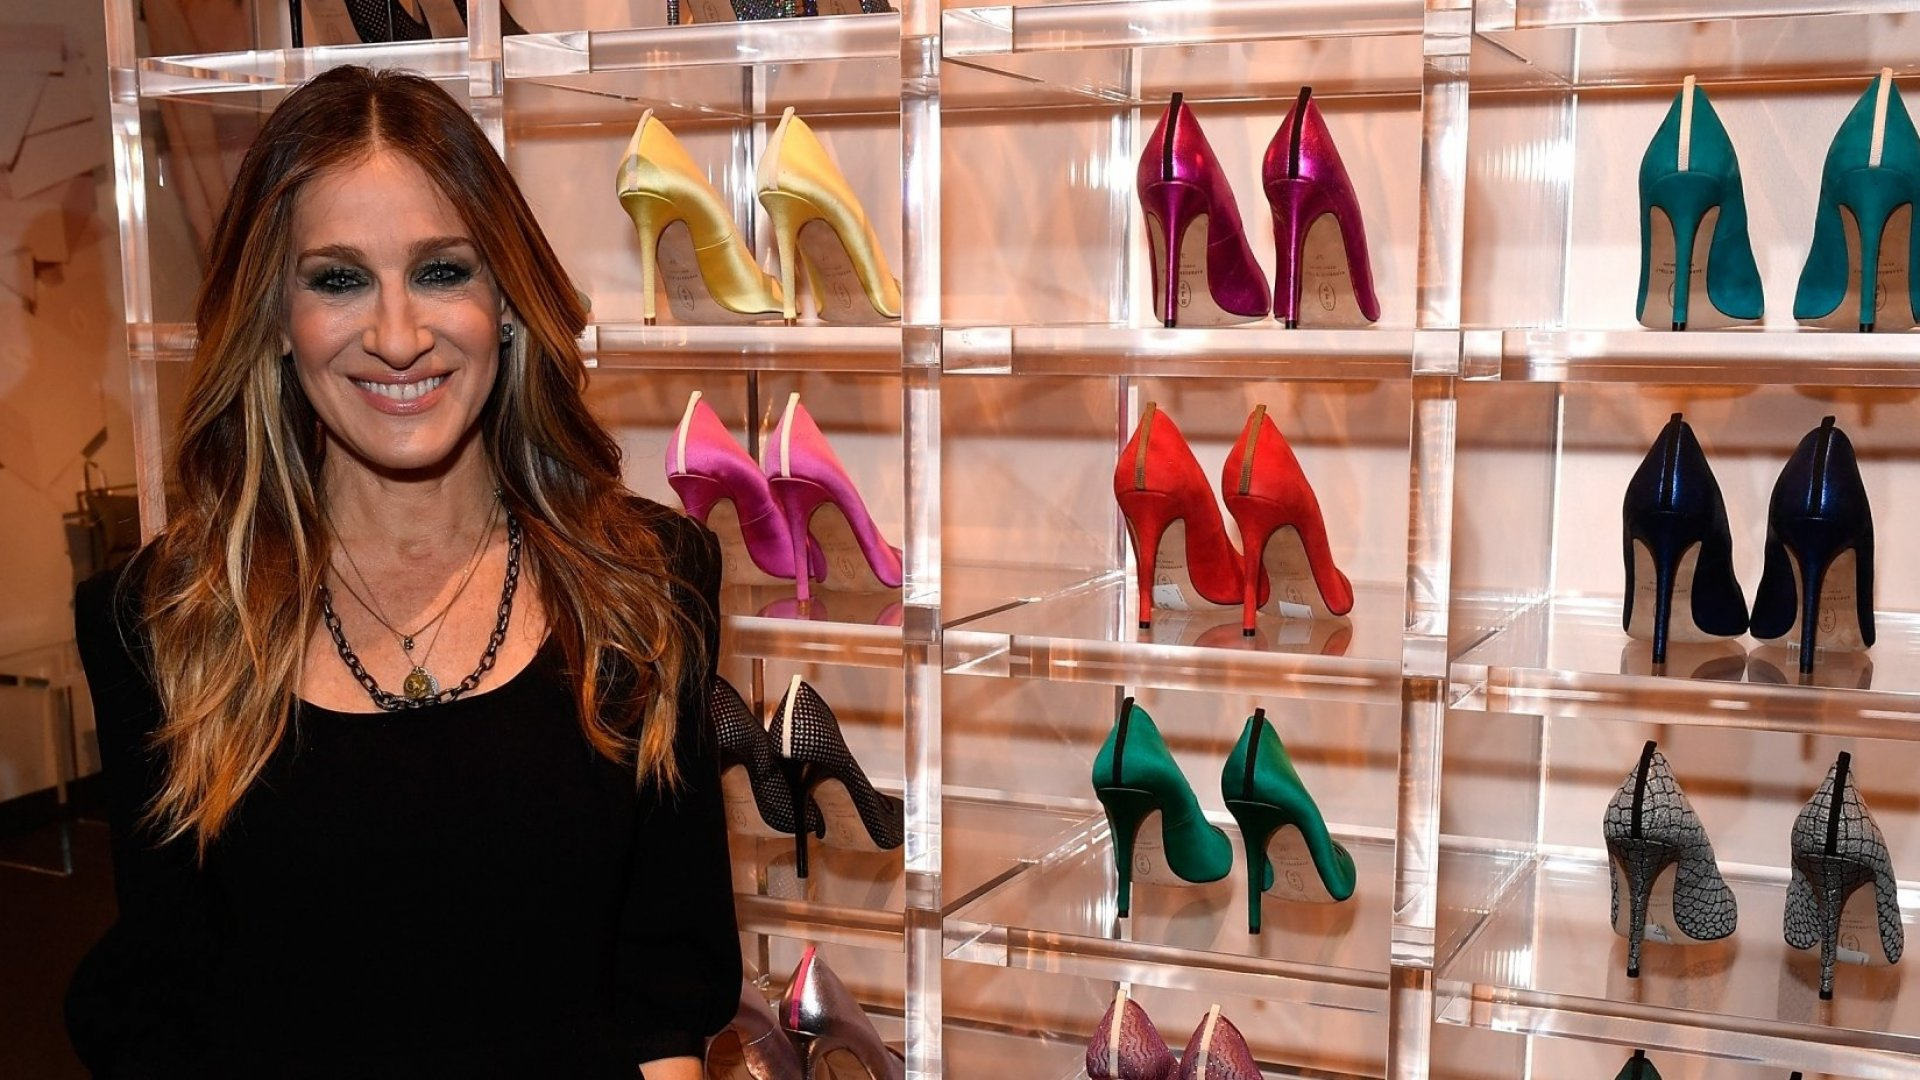 Airbnb Offers New York City Tour With Sarah Jessica Parker